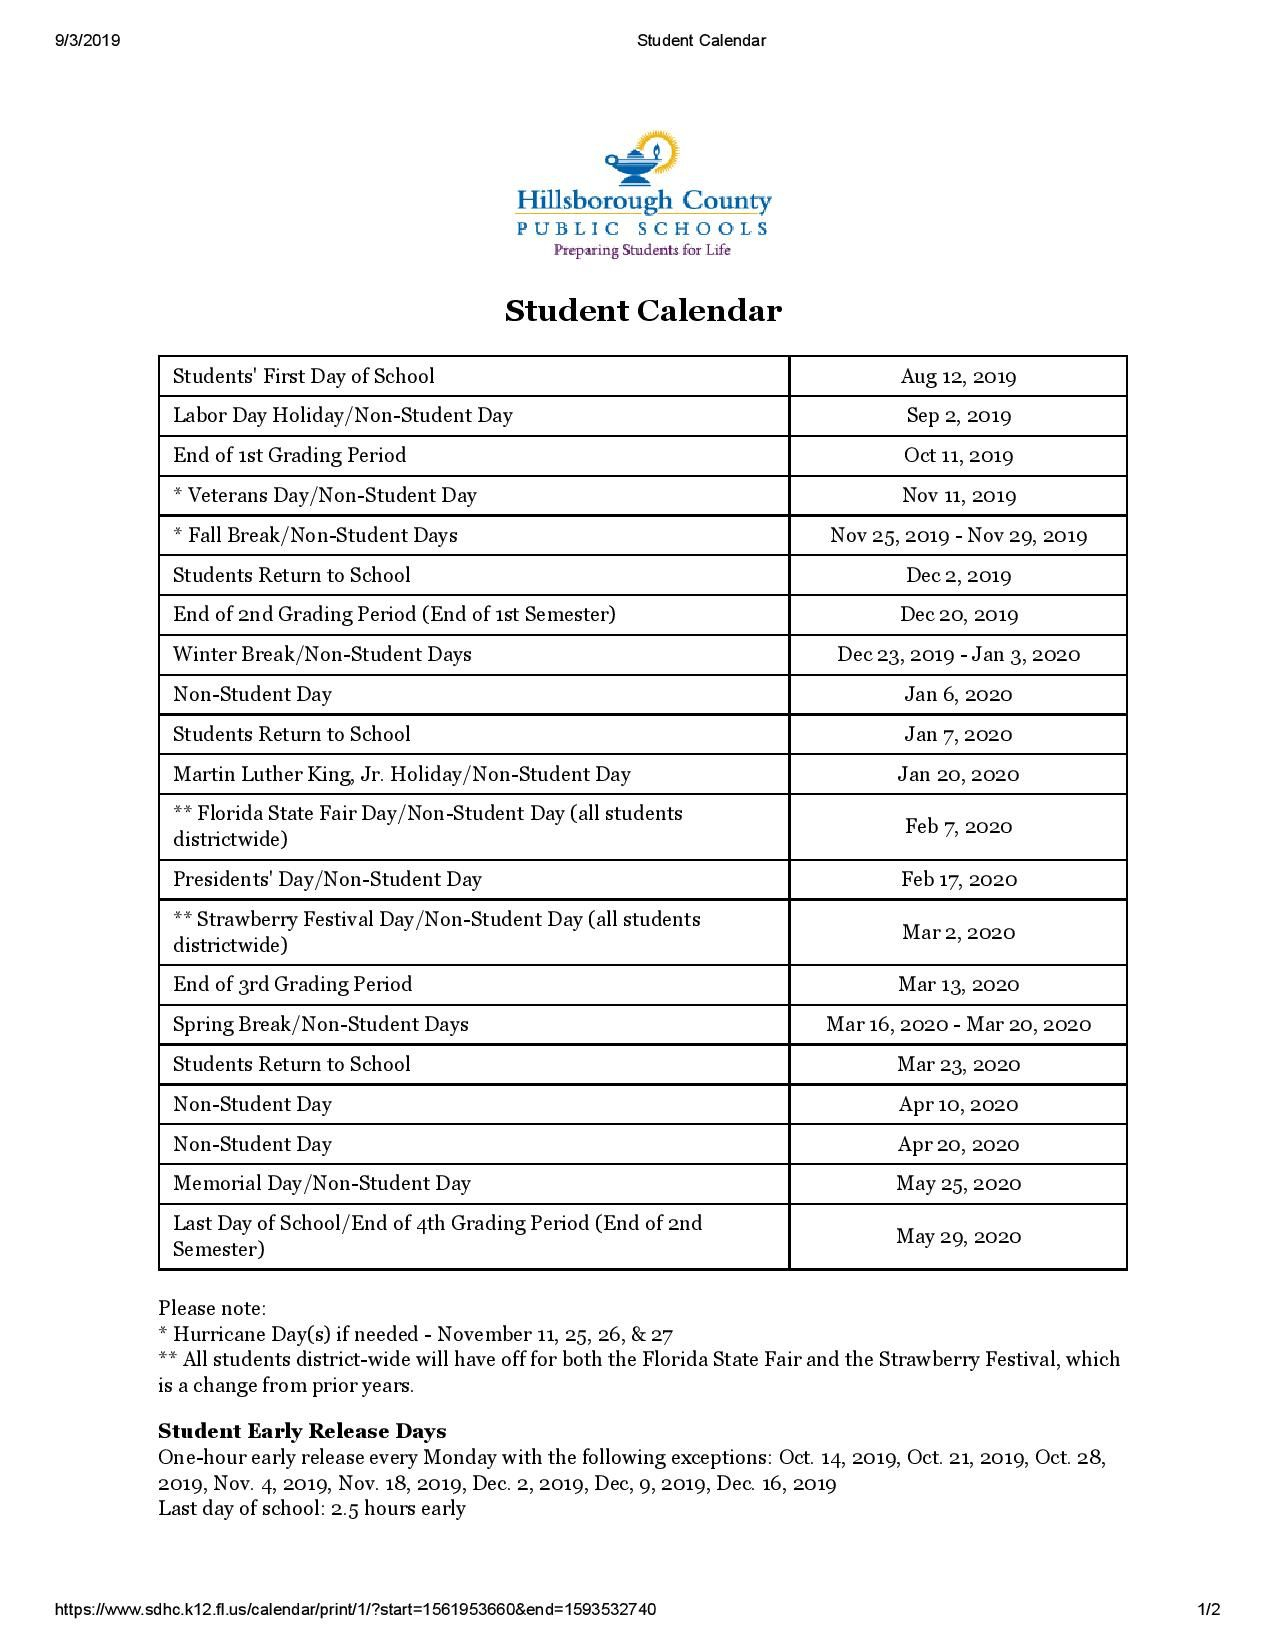 ✅Hillsborough County School Calendar (With Images) | School With Regard To Holidays For Hillsborough County Schools